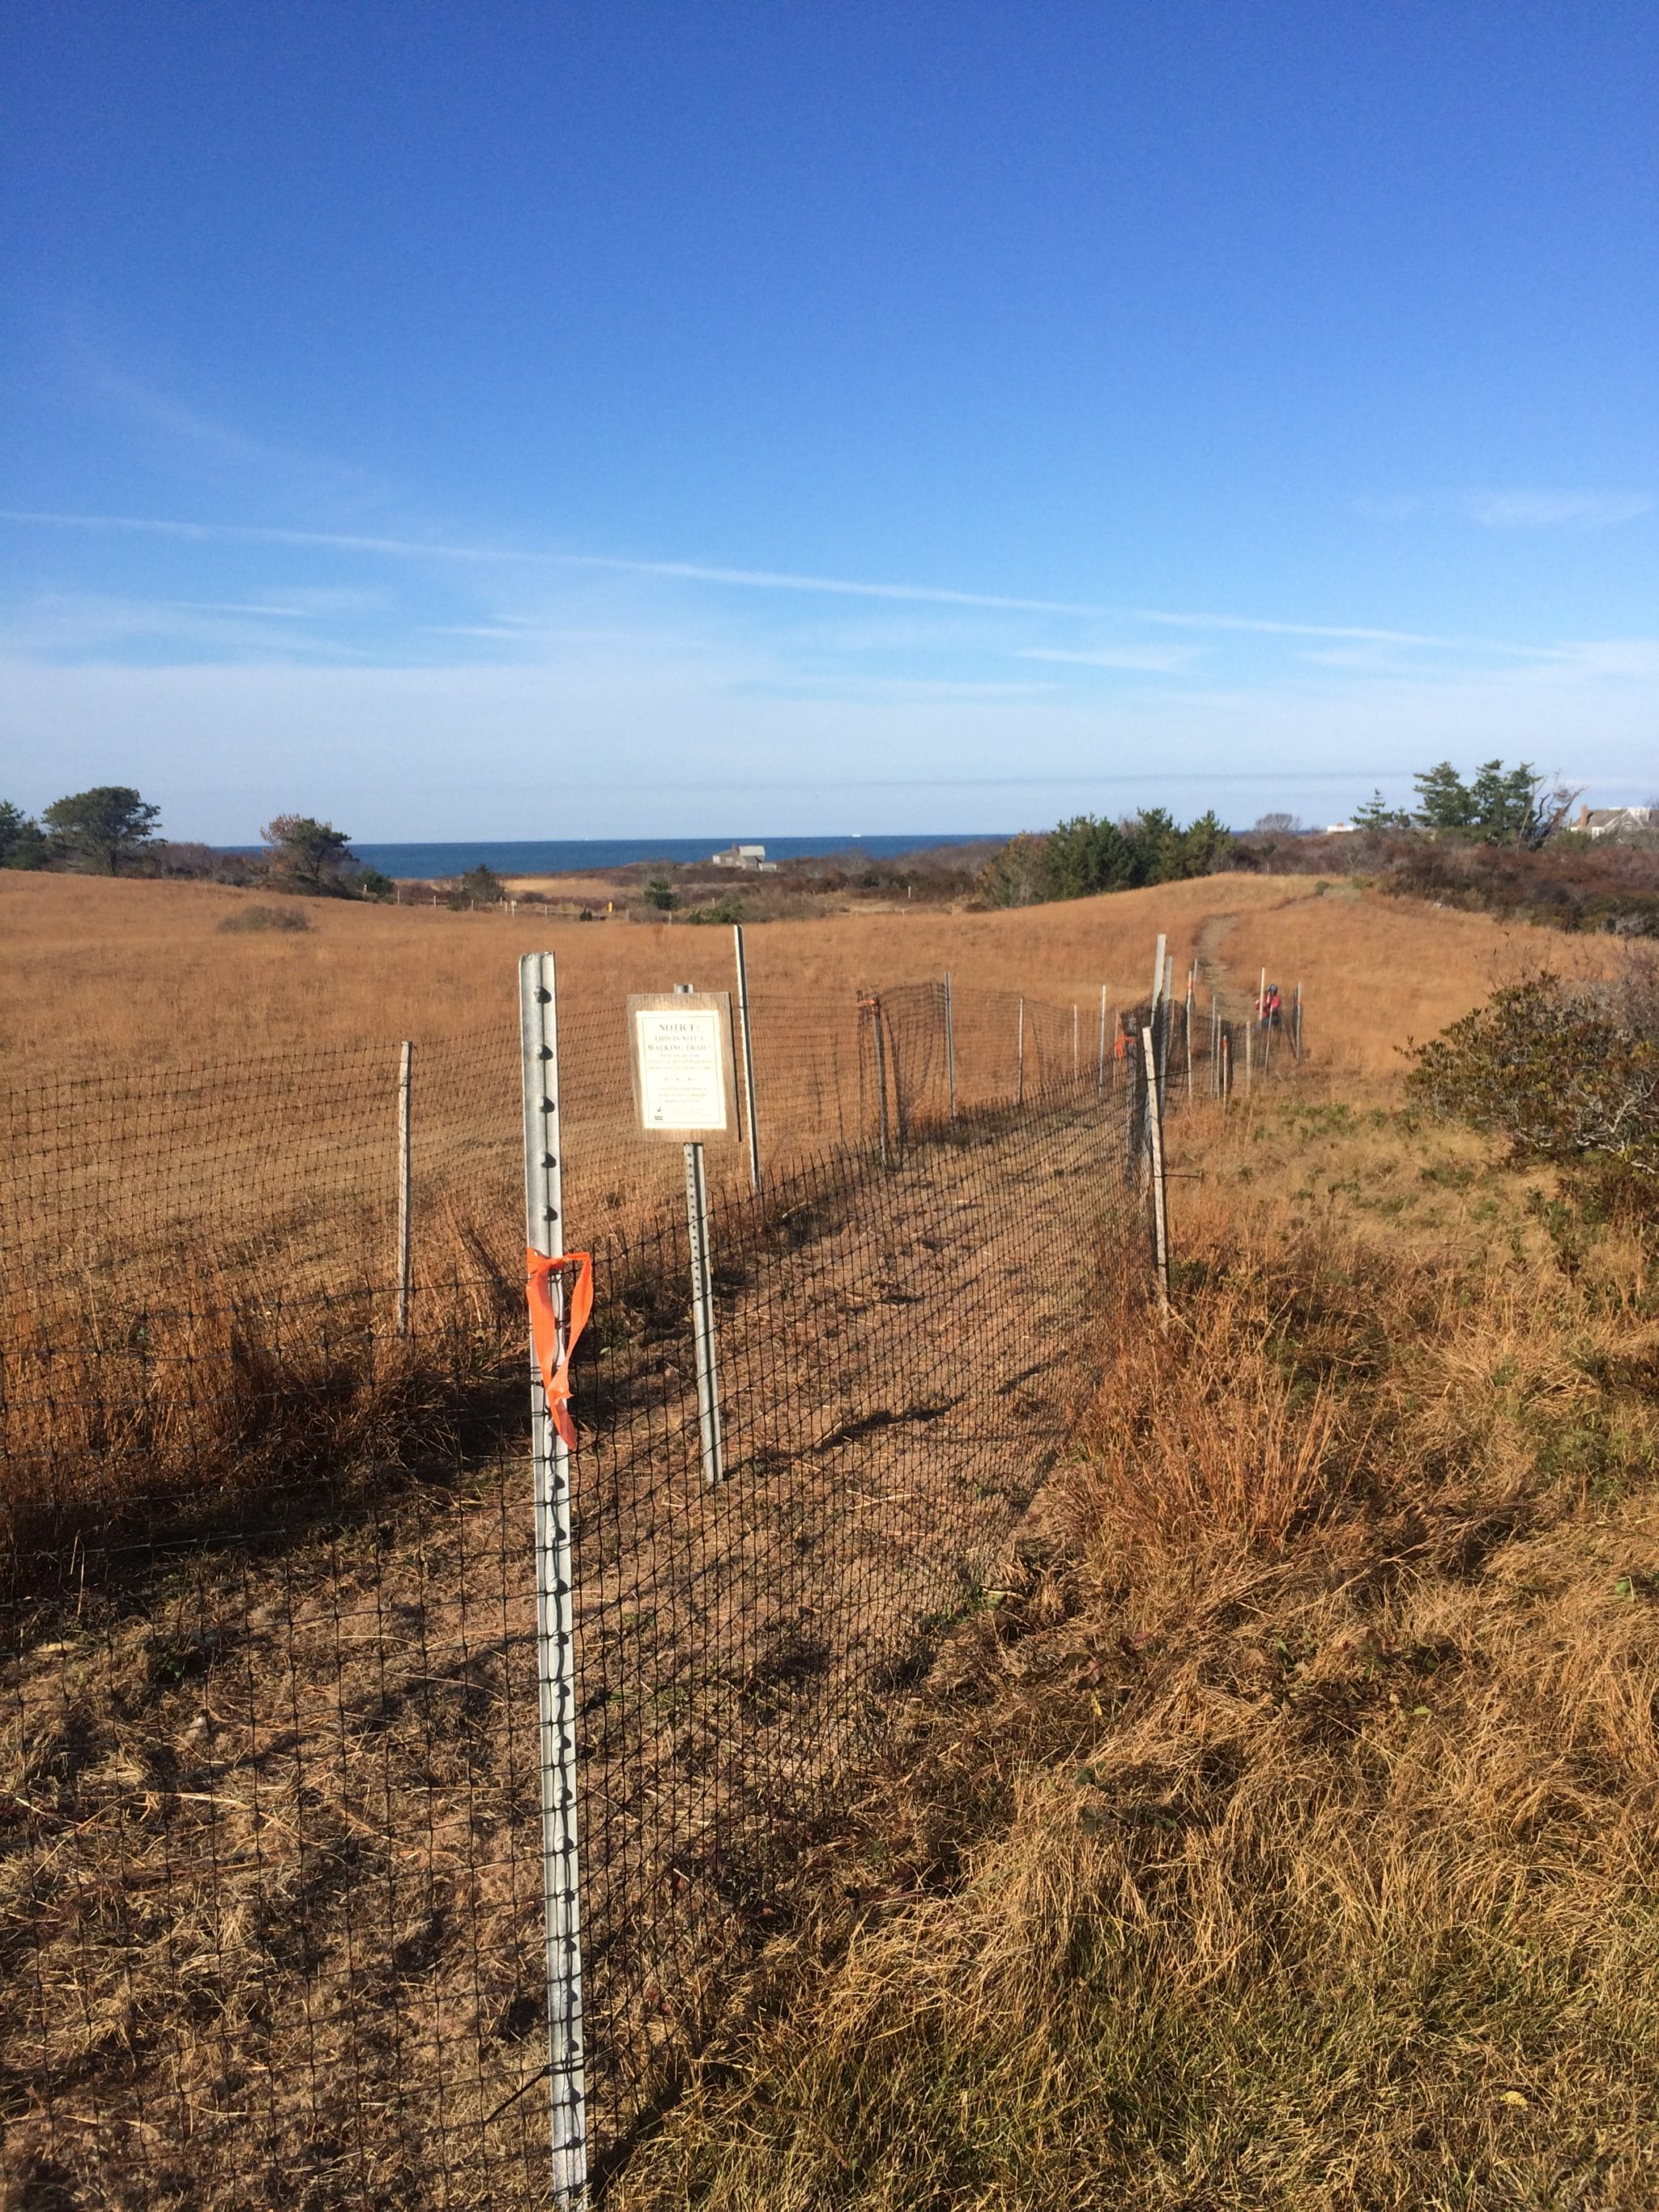 Reseeded area, fenced for the winter. We will monitor grass growth next year and hope this trail is able to re-establish.